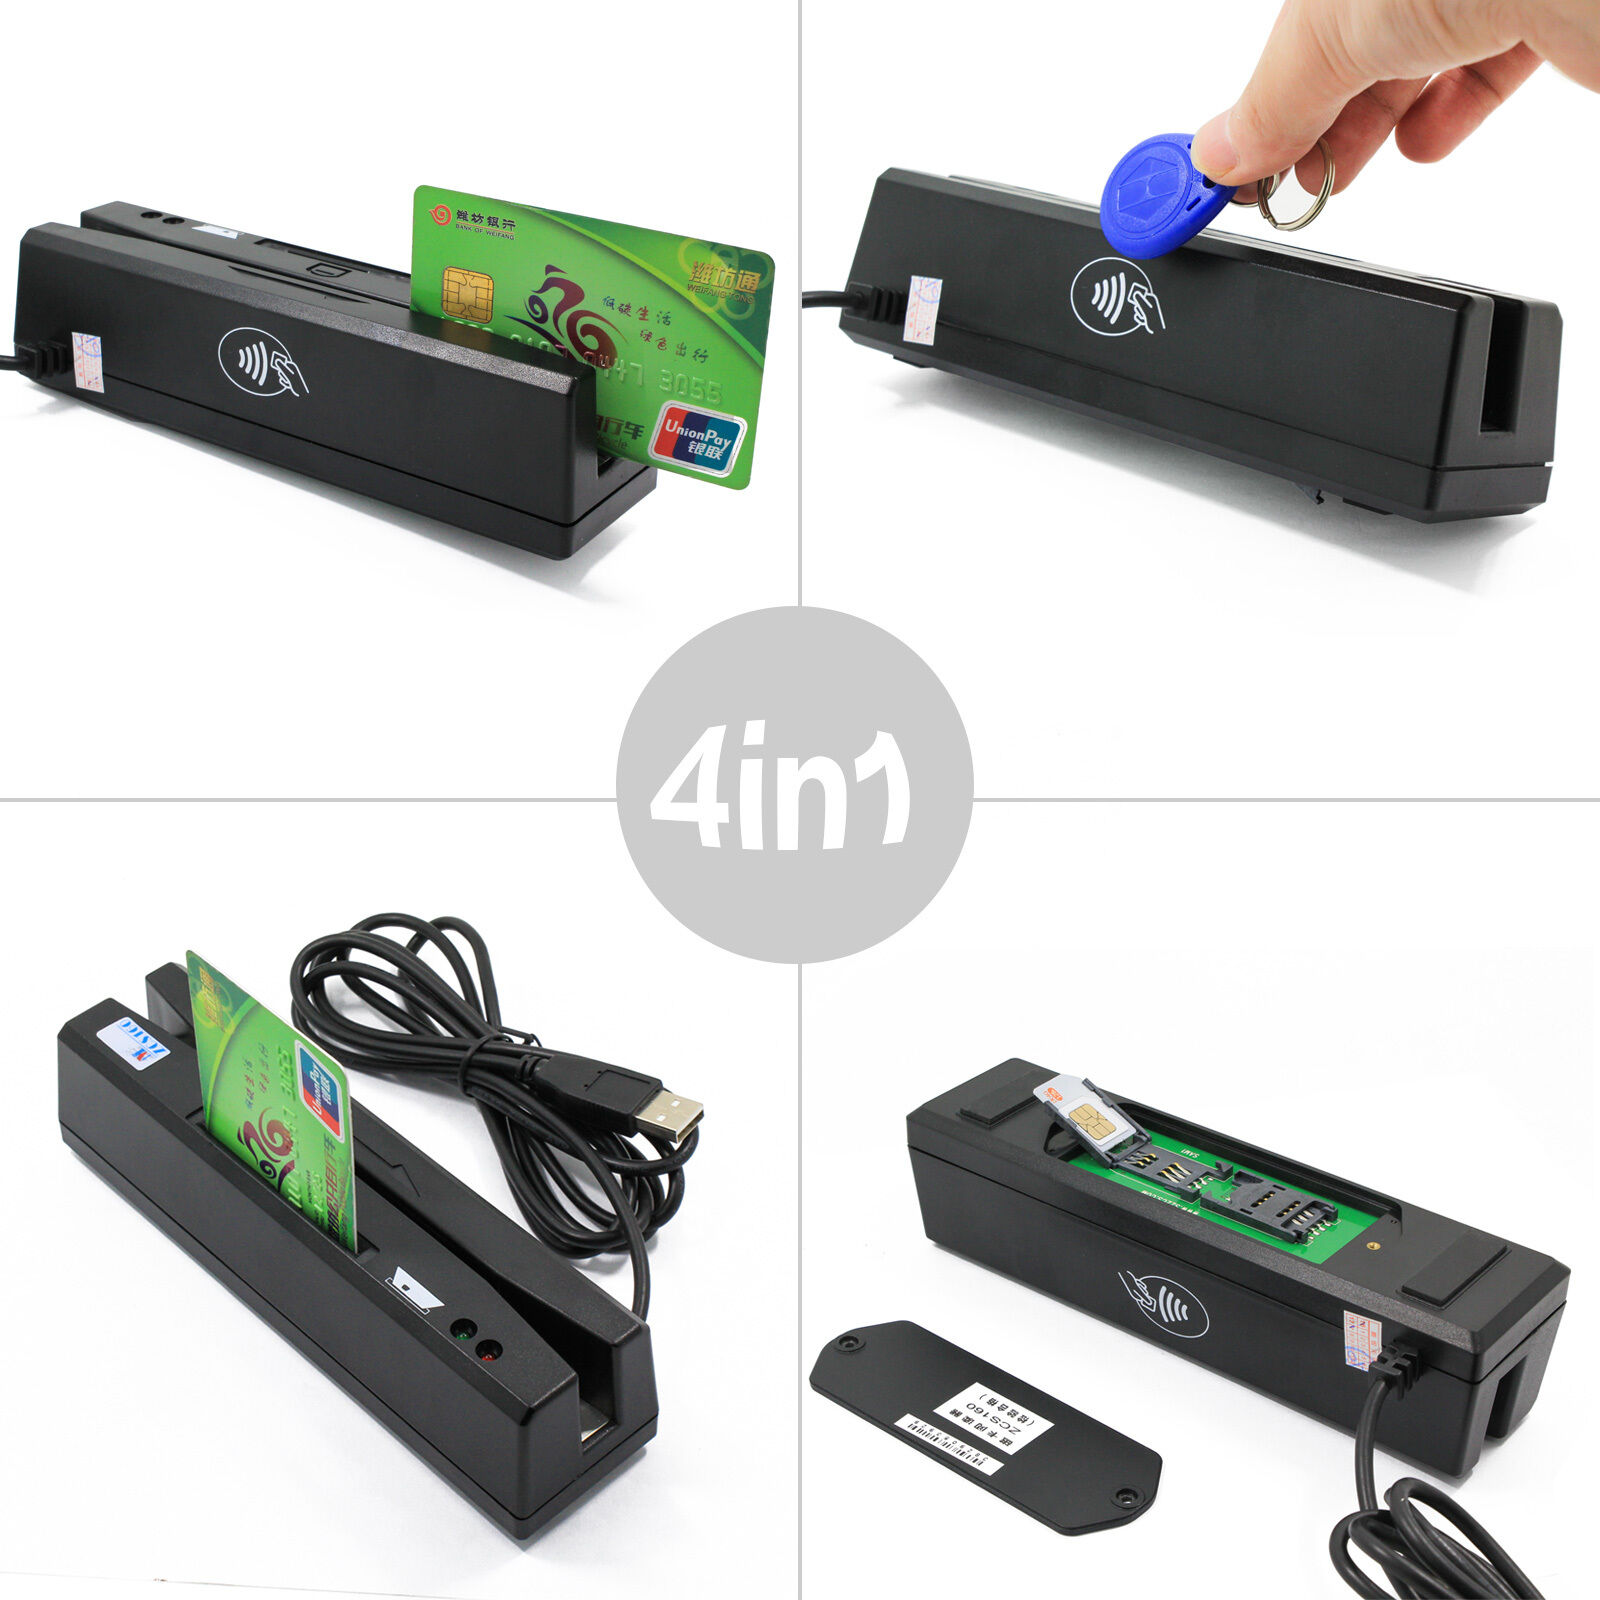 rfid credit card reader